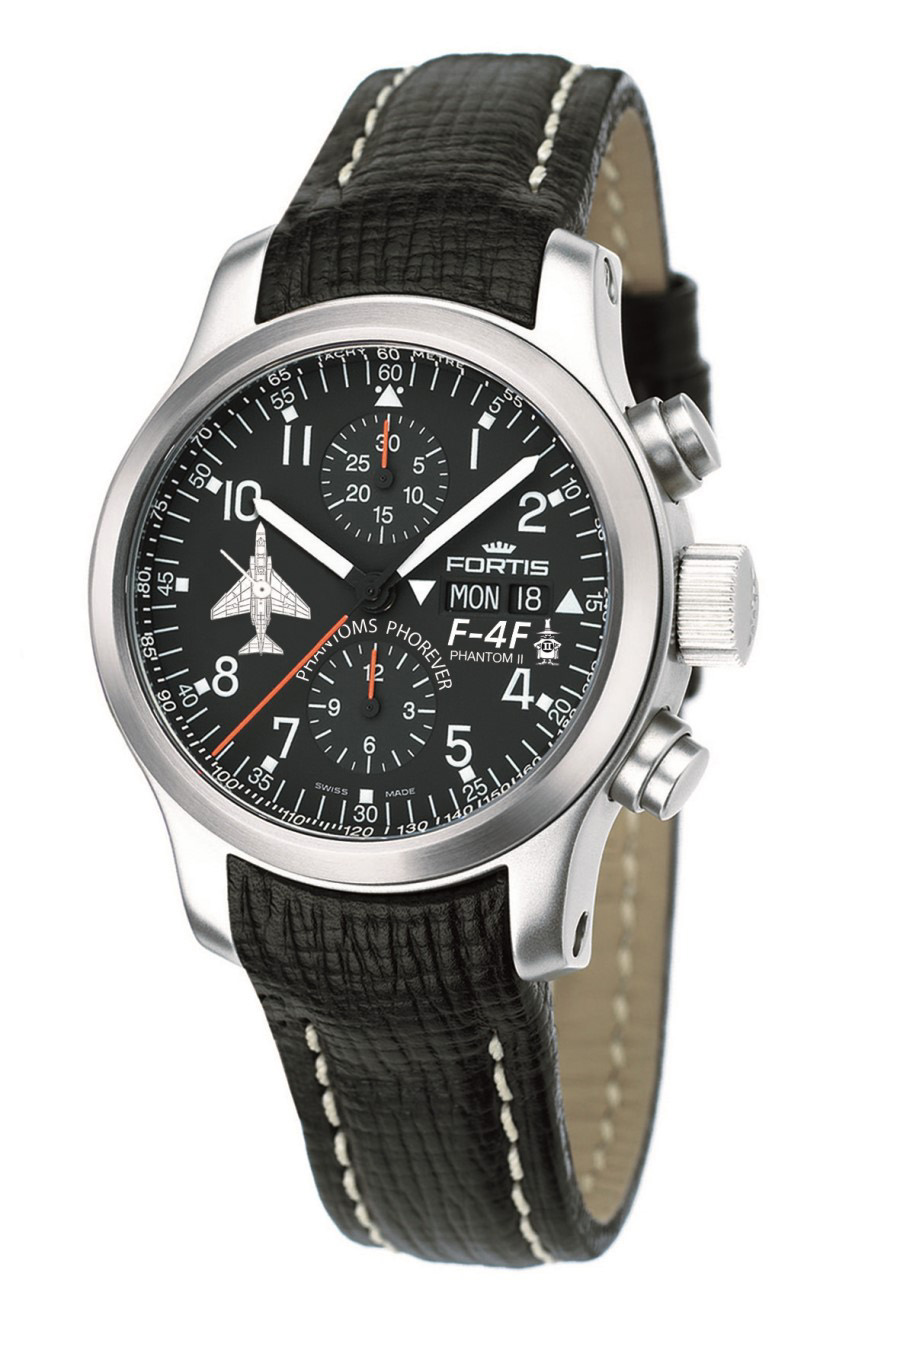 Fortis F-4F Phantoms Phorever Squadron Watch